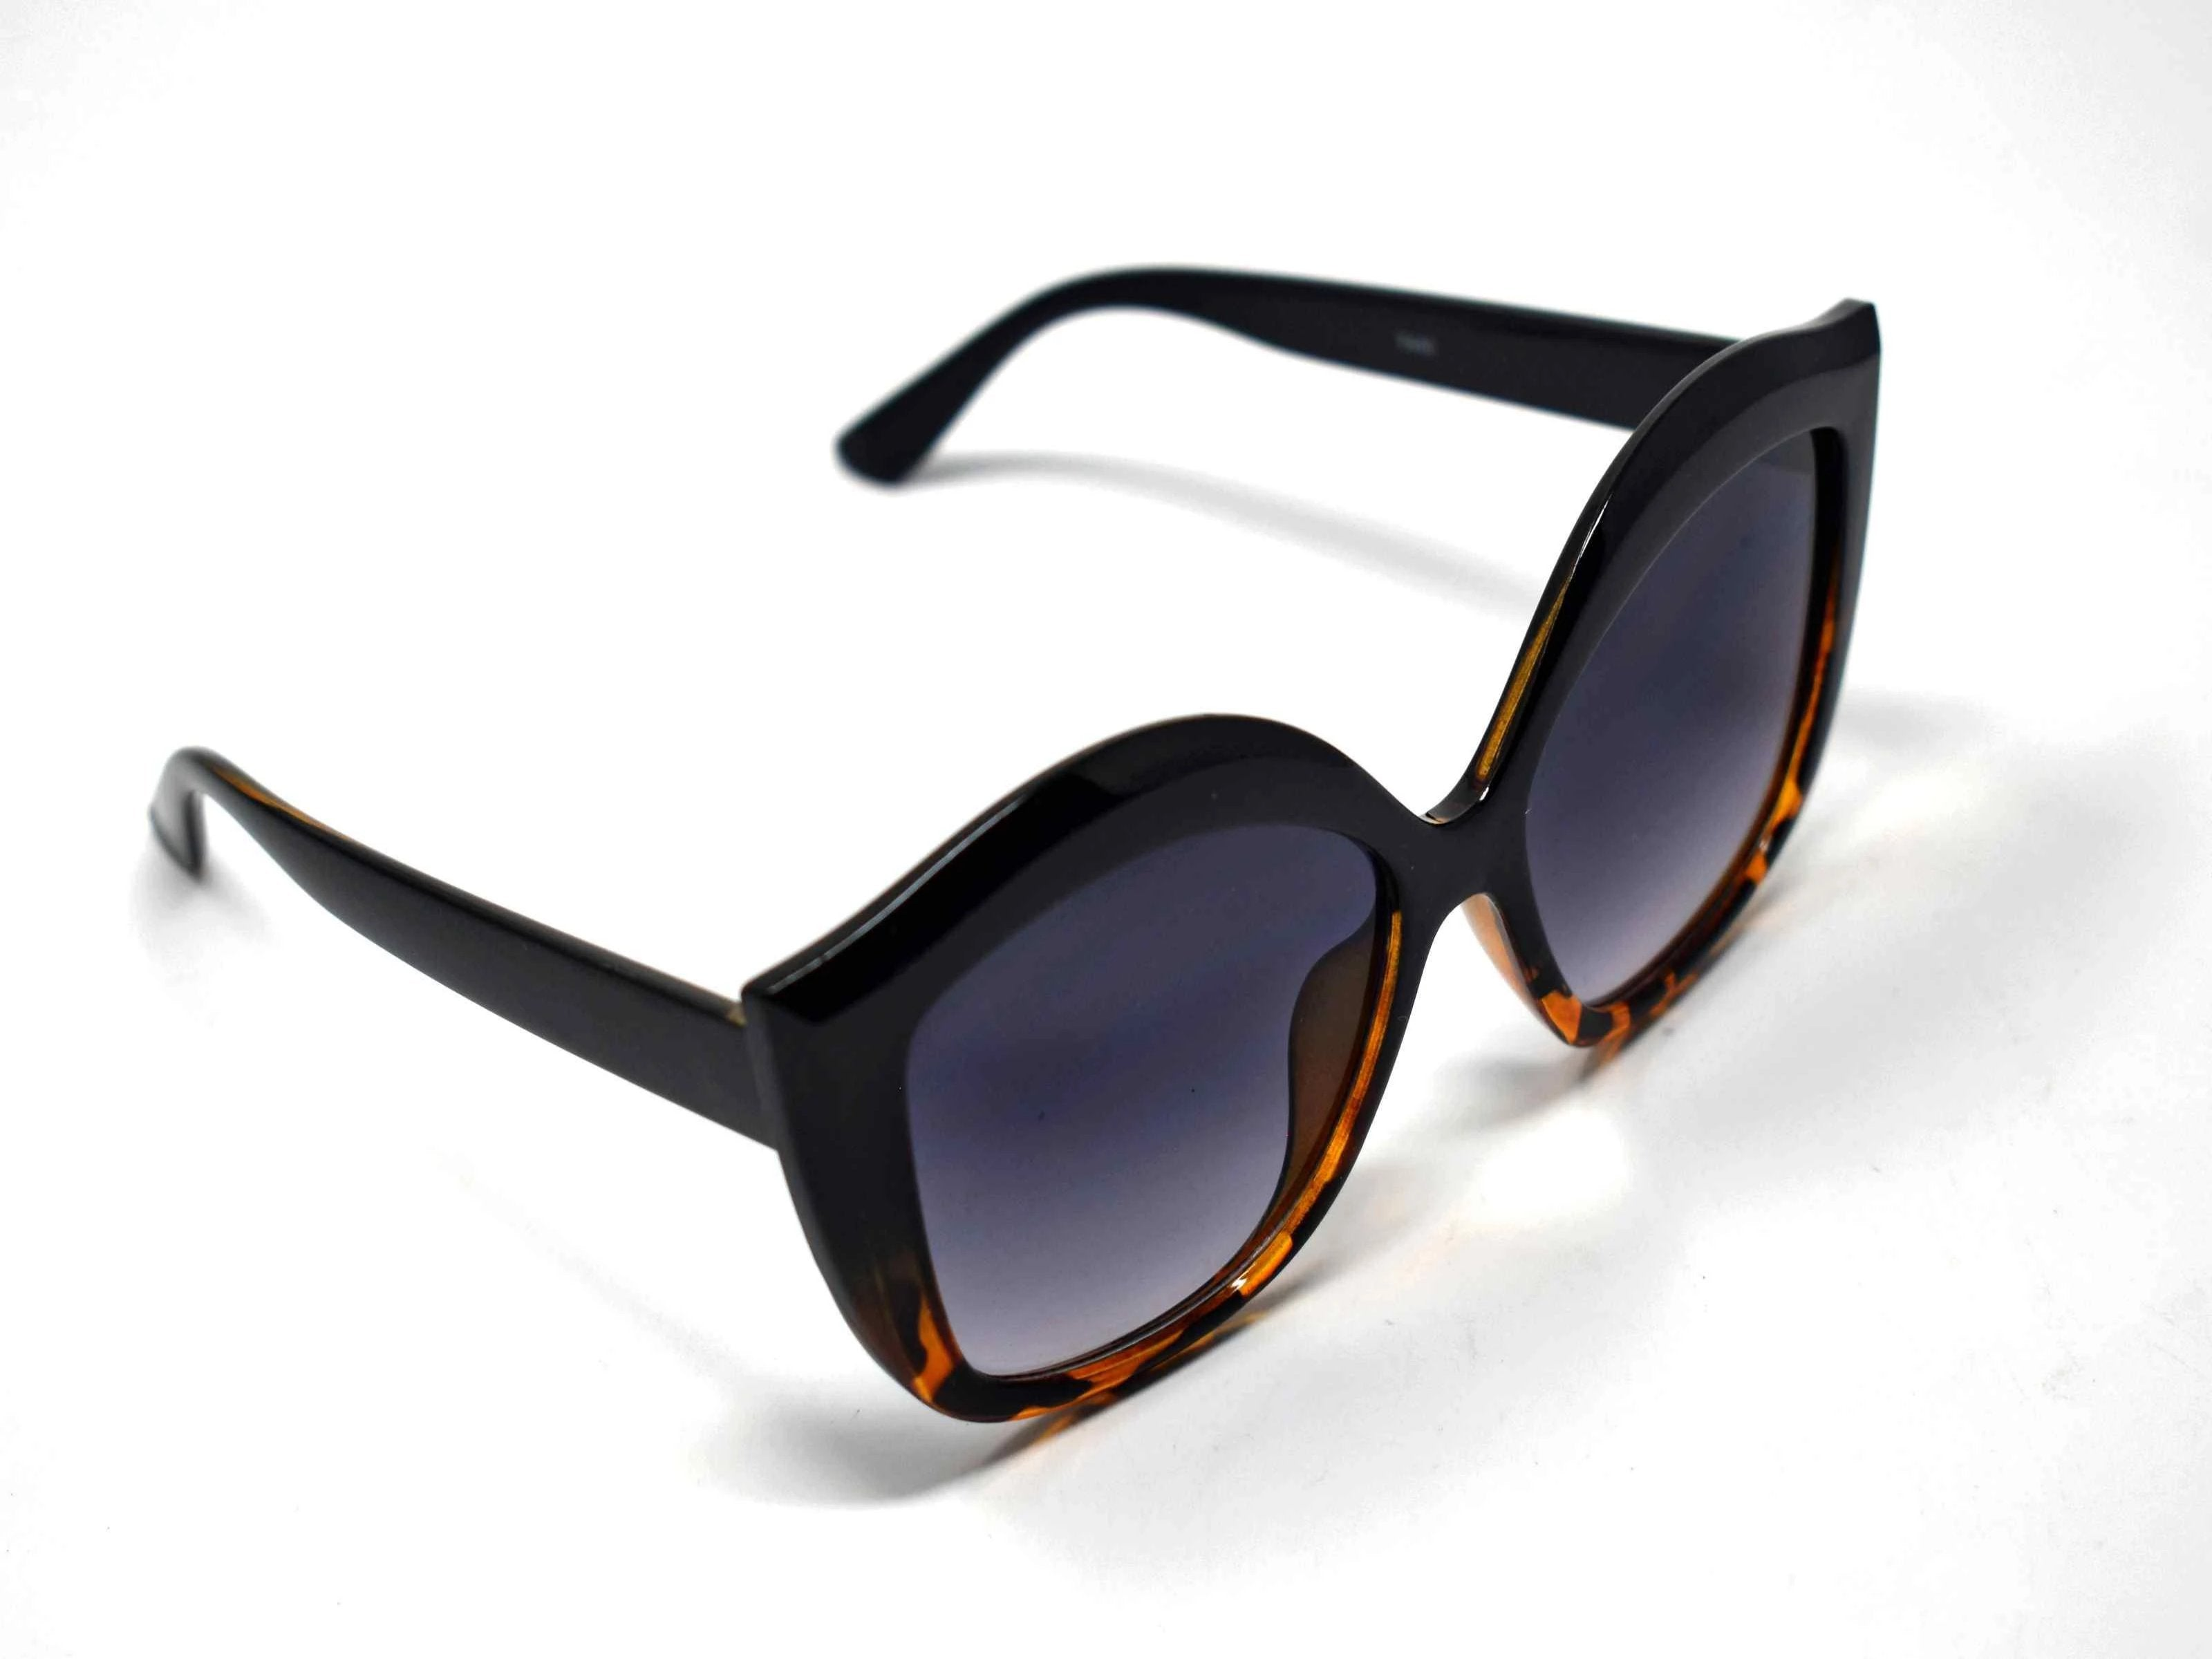 Retro glam has come again with our Petal black and leopard cat eye frame sunglasses with a black lens.